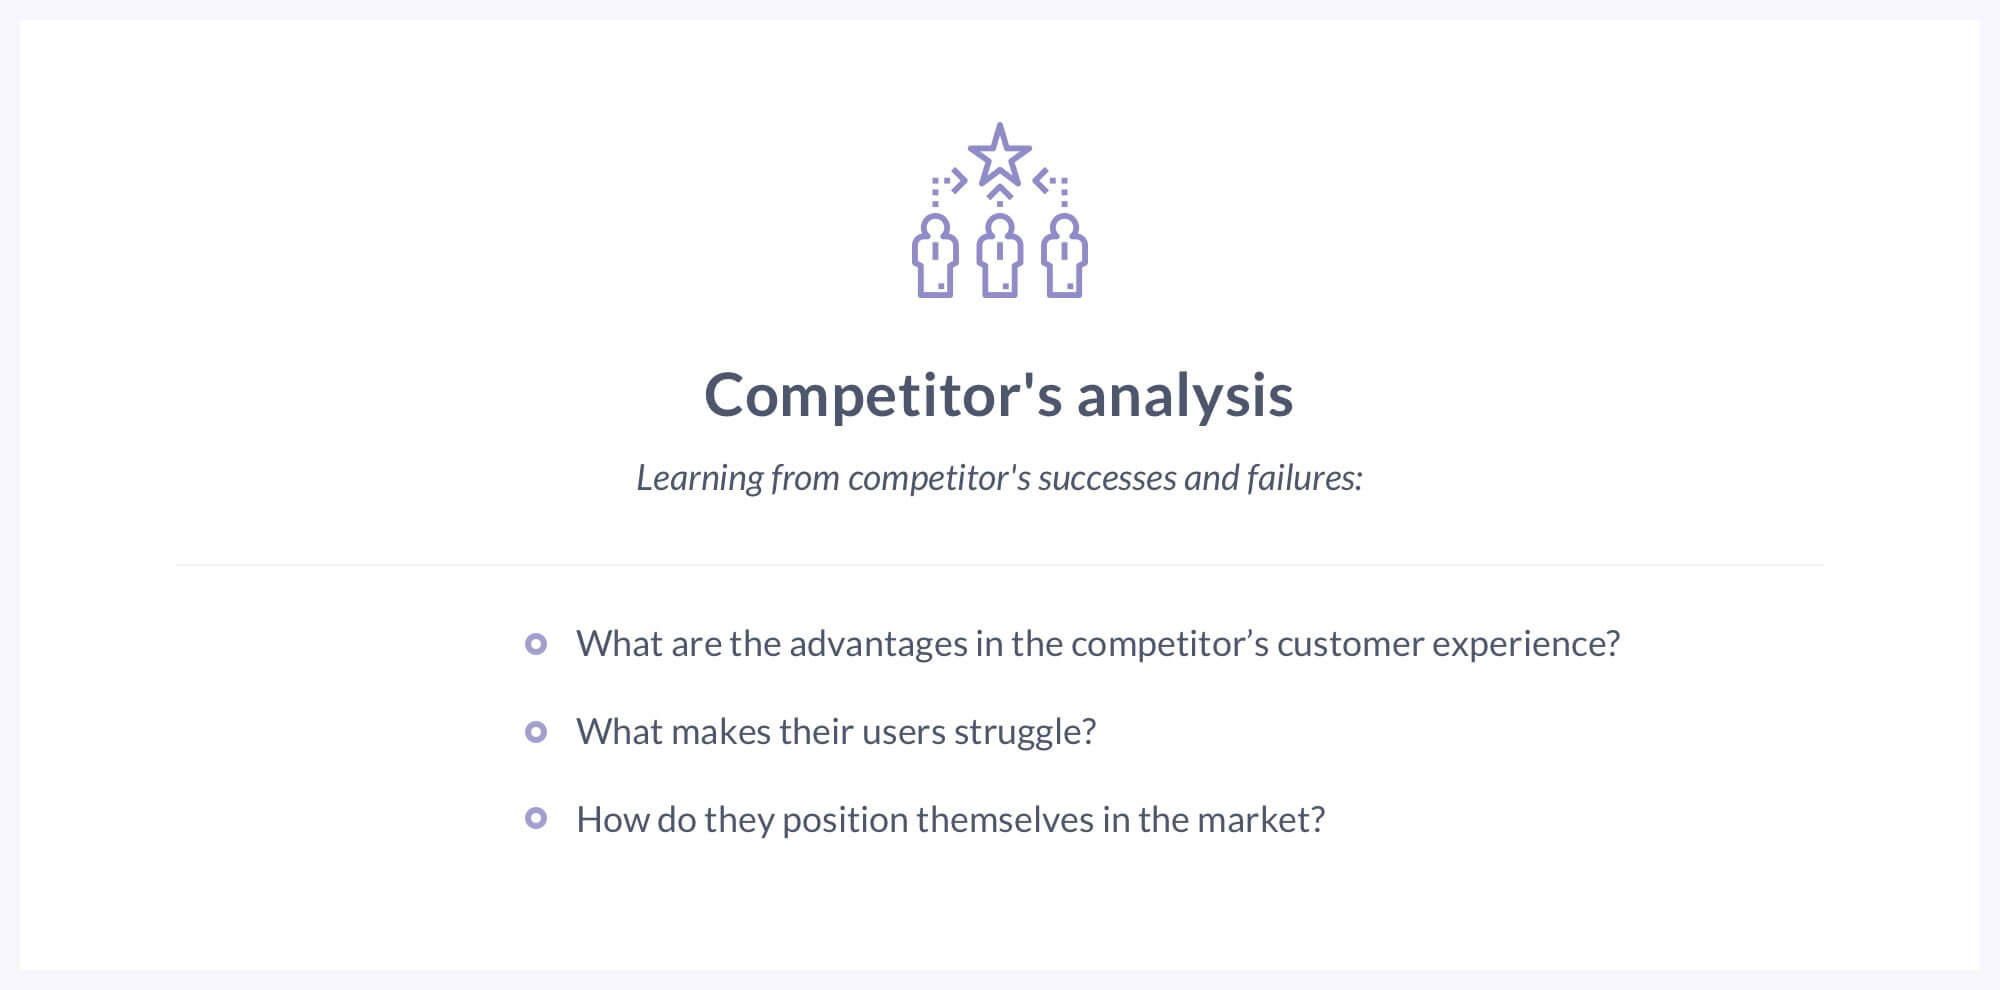 ux-design-core-banking-case-study-competitors-analysis